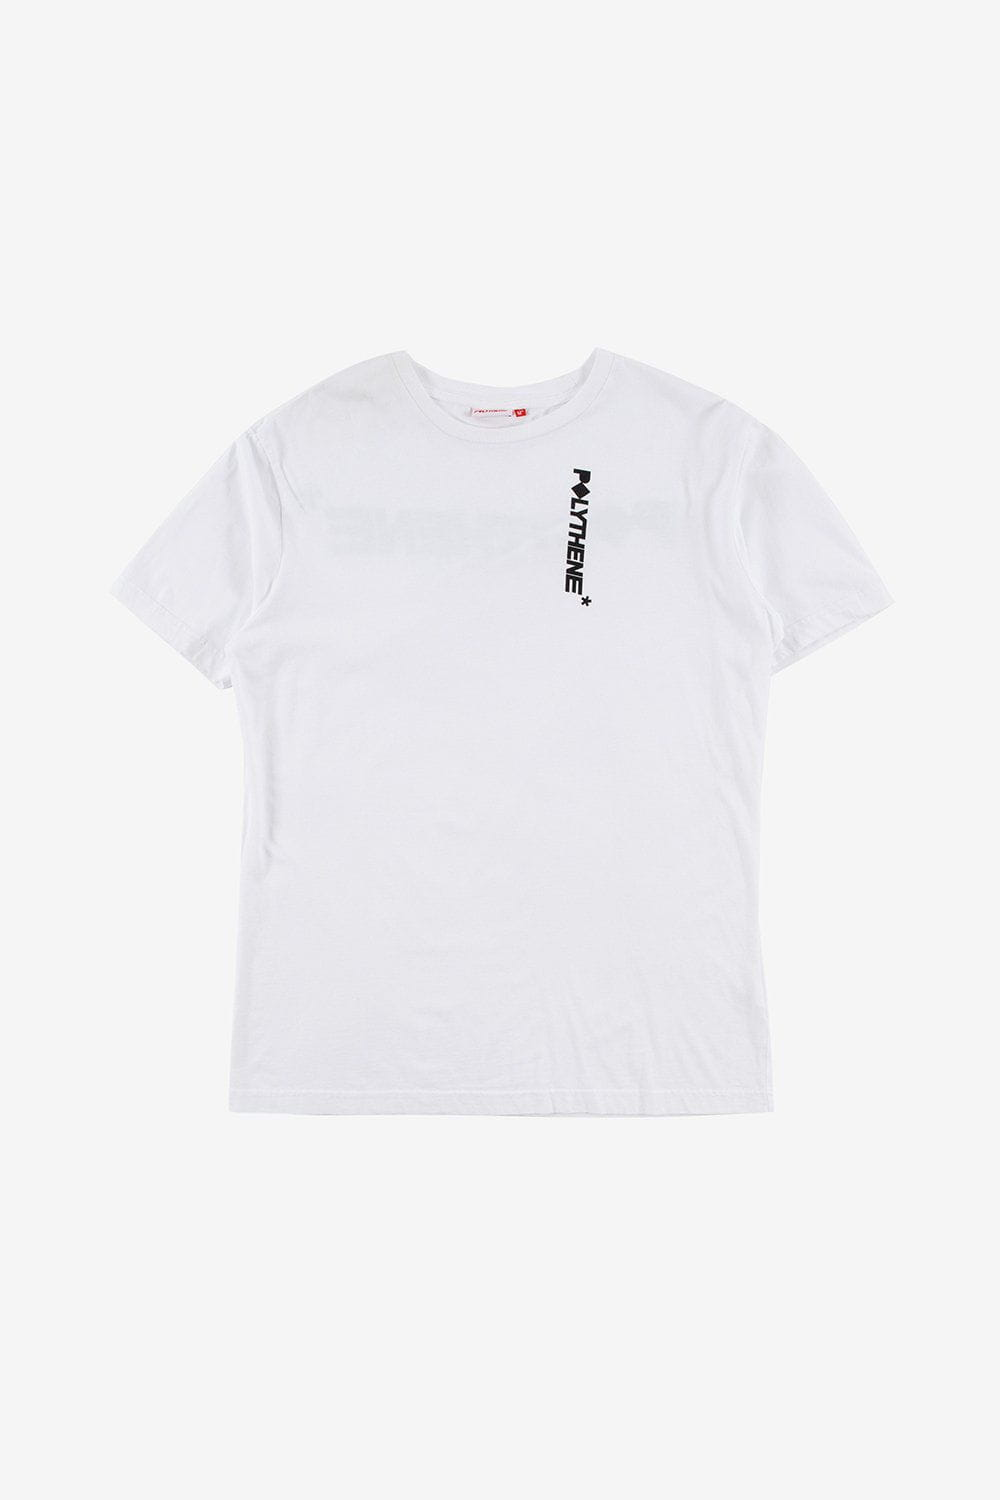 Polythene Optics Apparel Logo Short Sleeve T-Shirt White